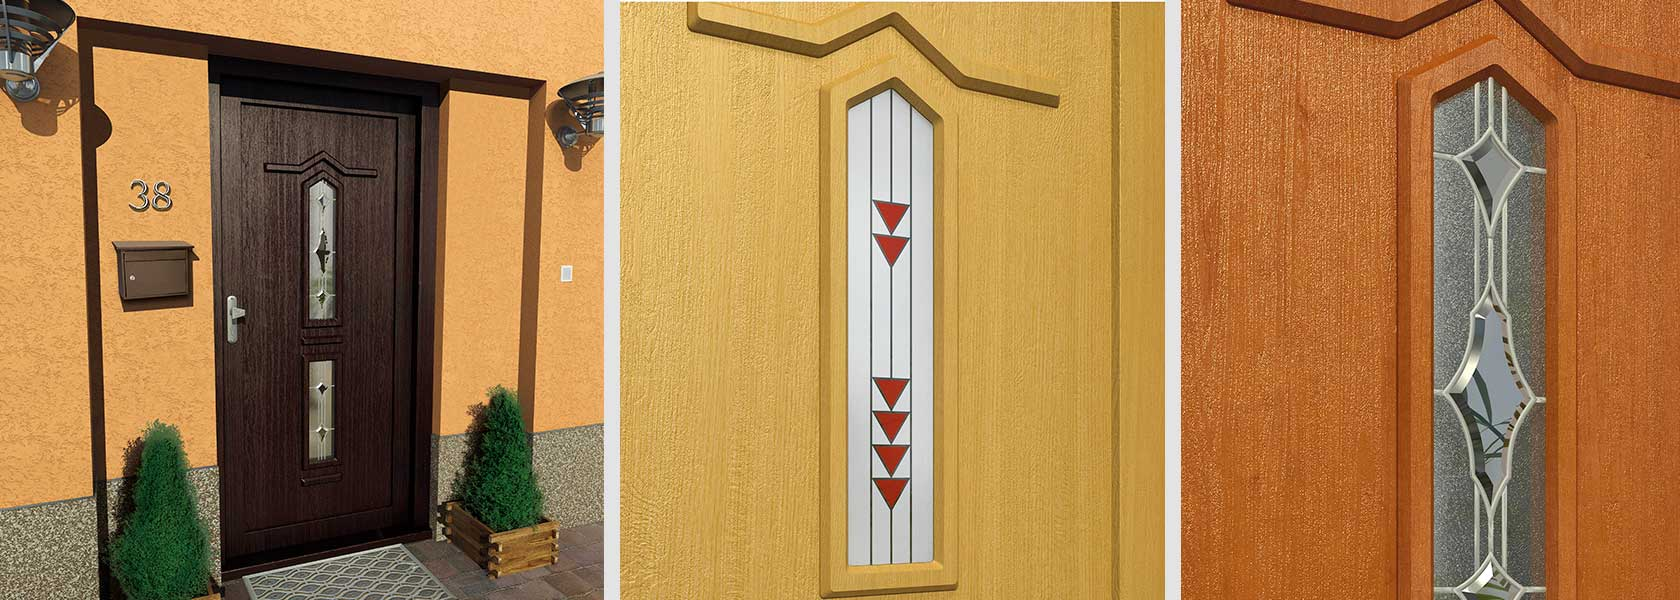 HPL laminate door panels, door panels